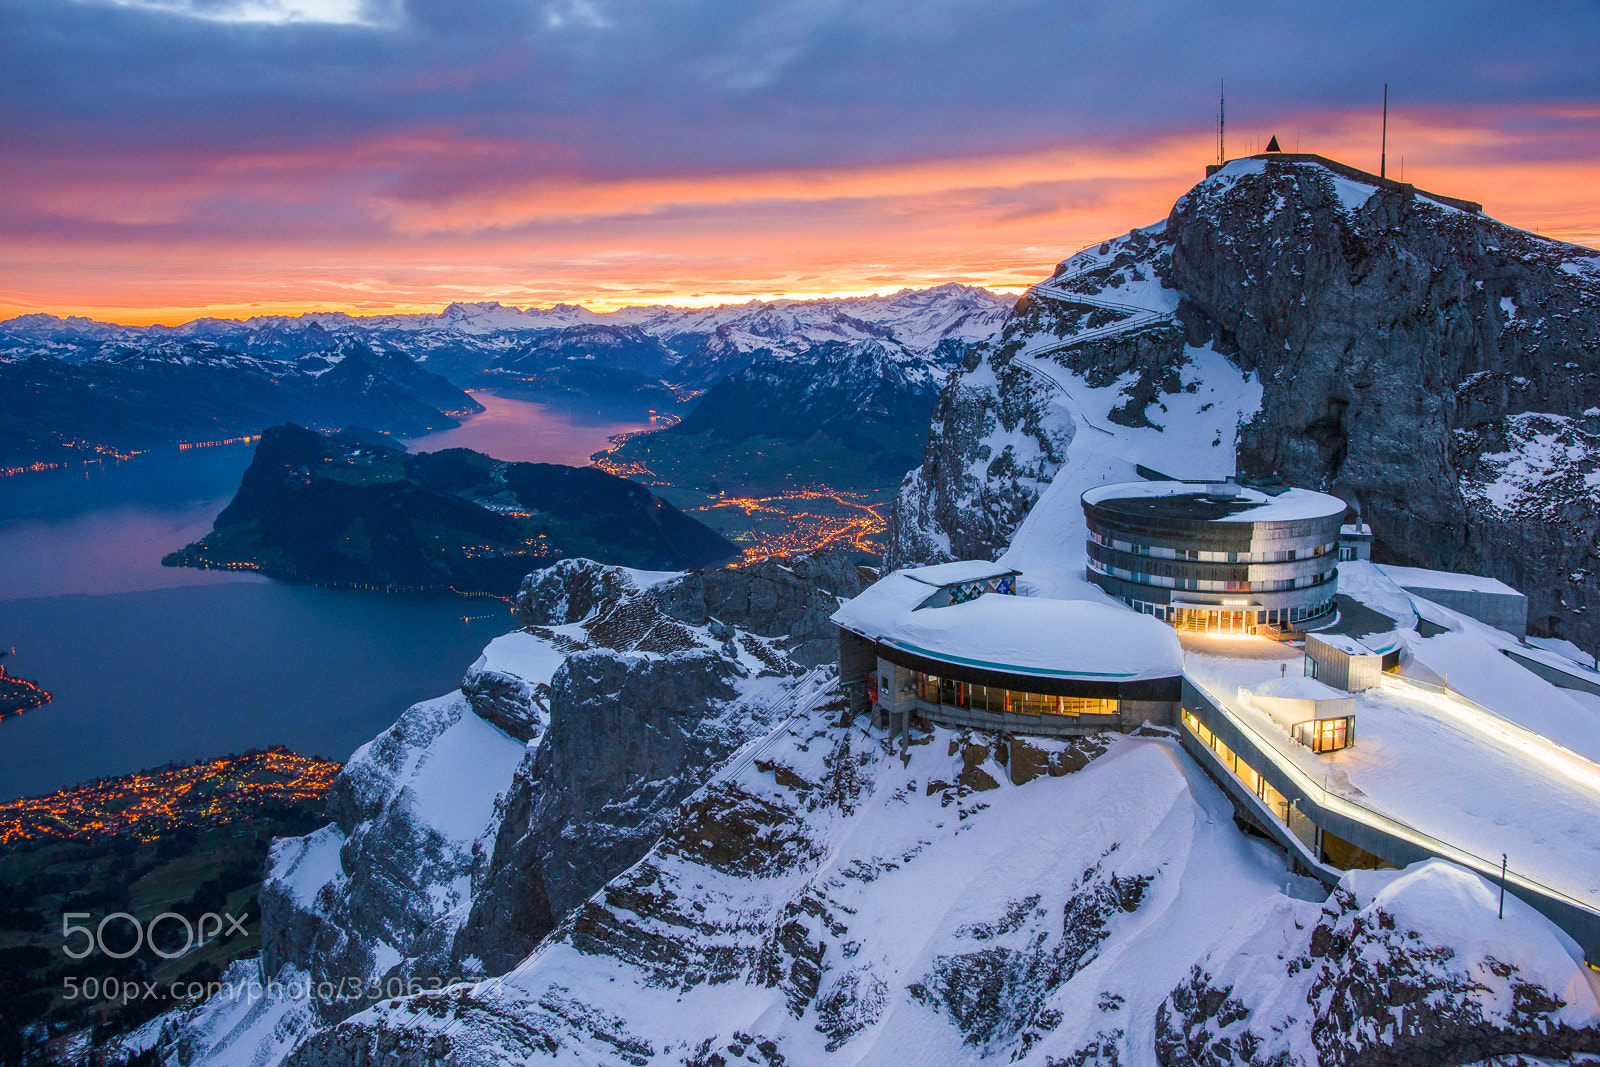 Photograph Pilatus by Thierry Hennet on 500px